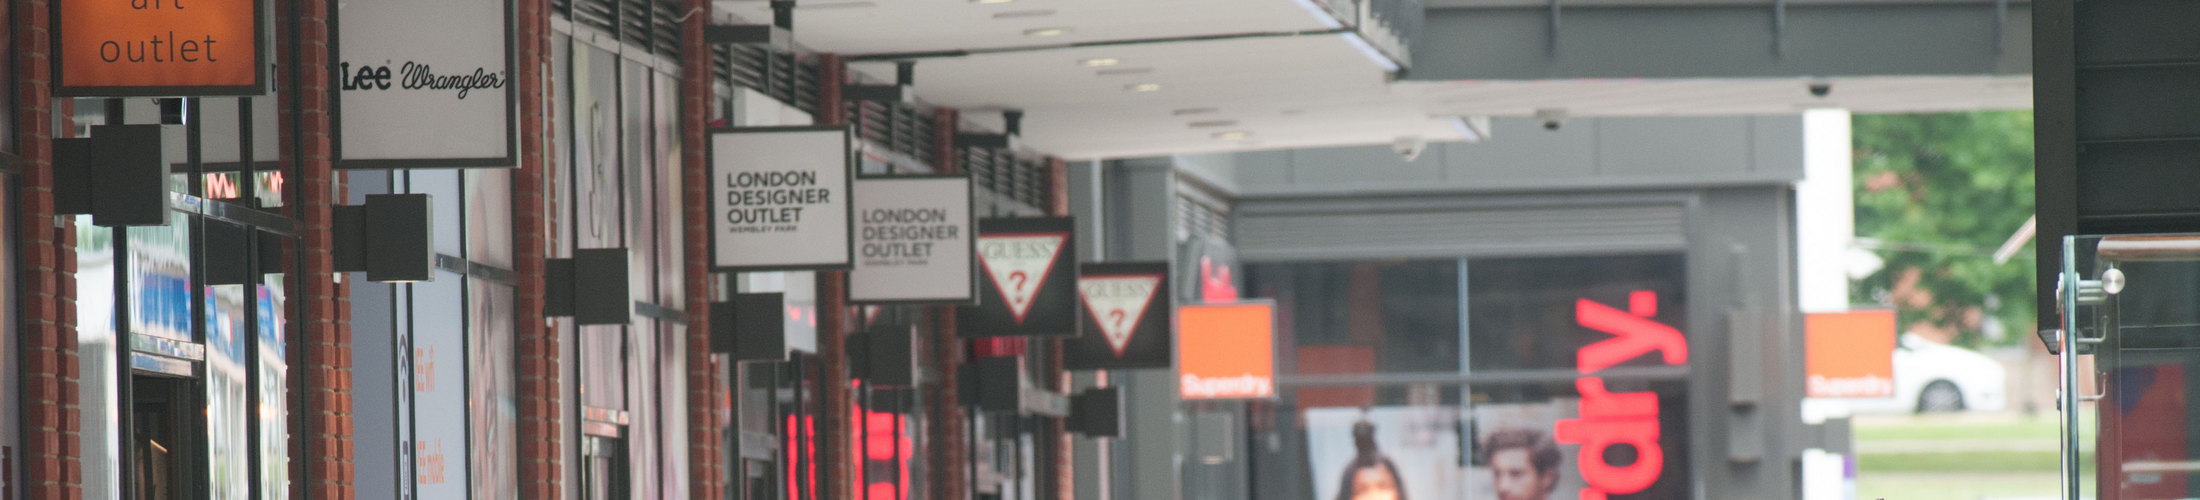 d366d8b49d65d2 New signings and a UK first for London Designer Outlet